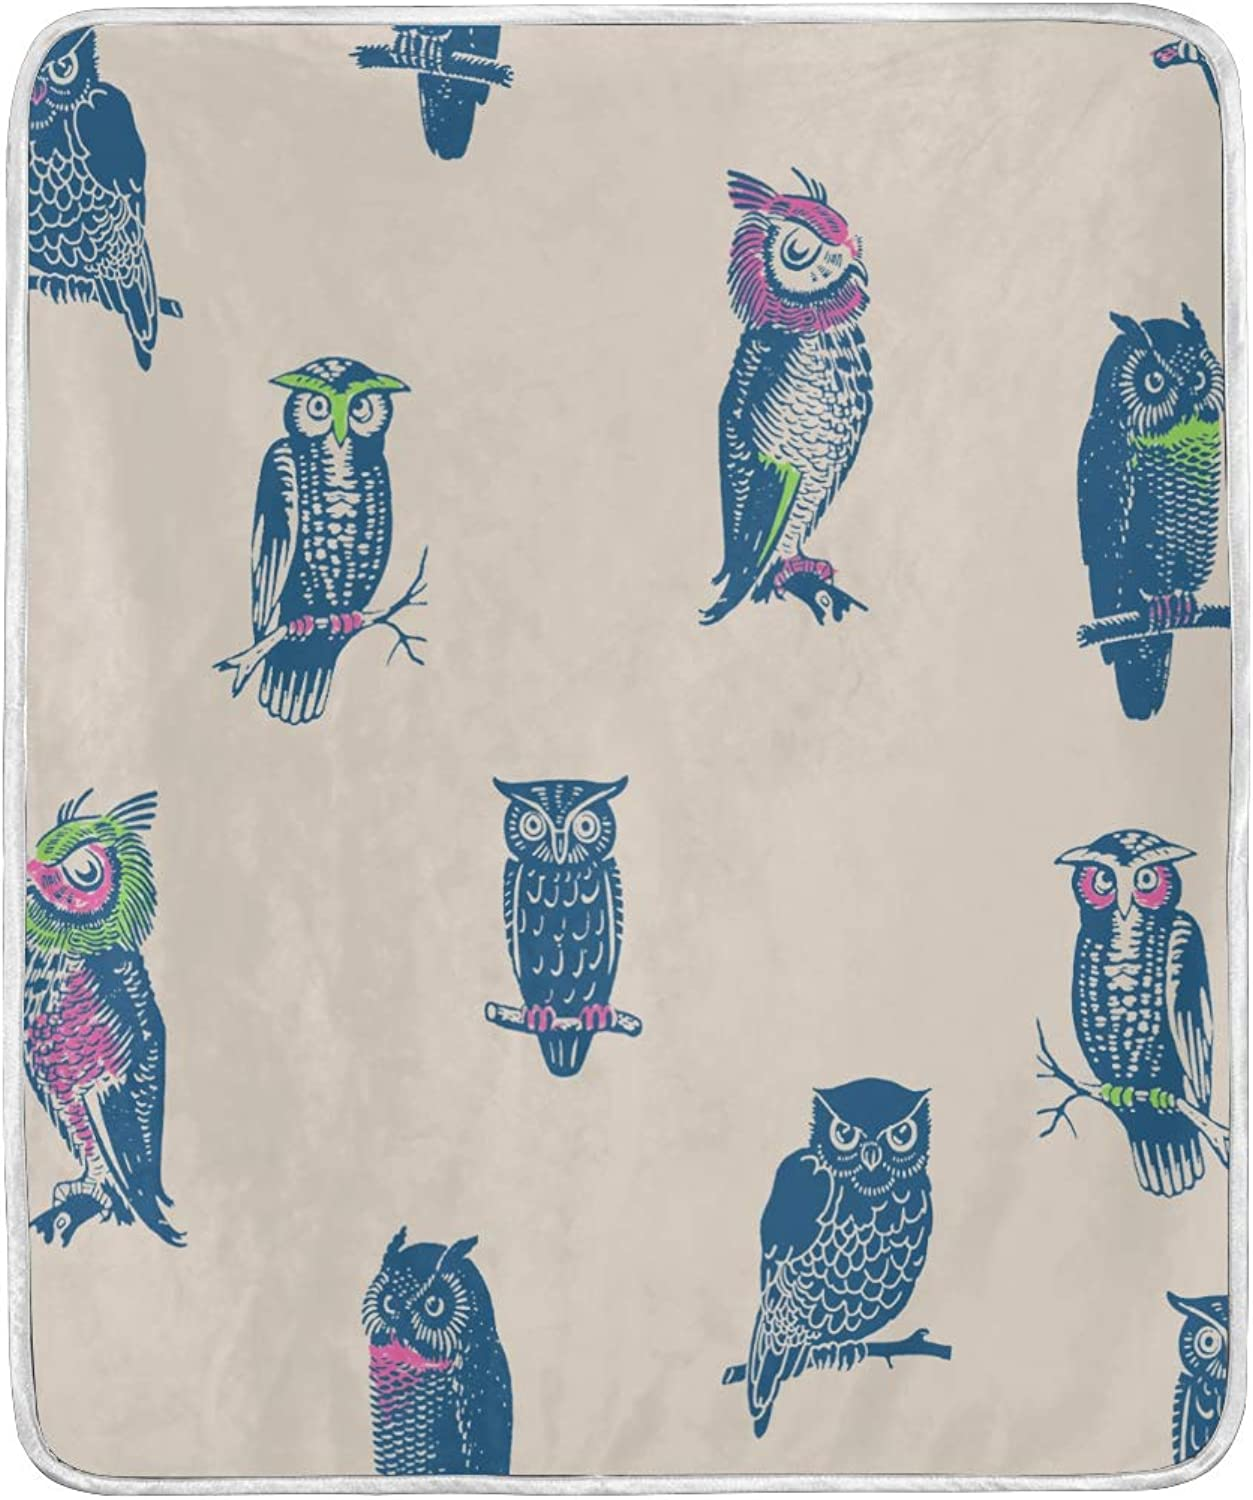 VIMMUCIR Home Decor Owl Blanket Soft Warm Throw Blankets for Bed Sofa Lightweight Travelling Camping 50 x 60 Inch for Kids Adults